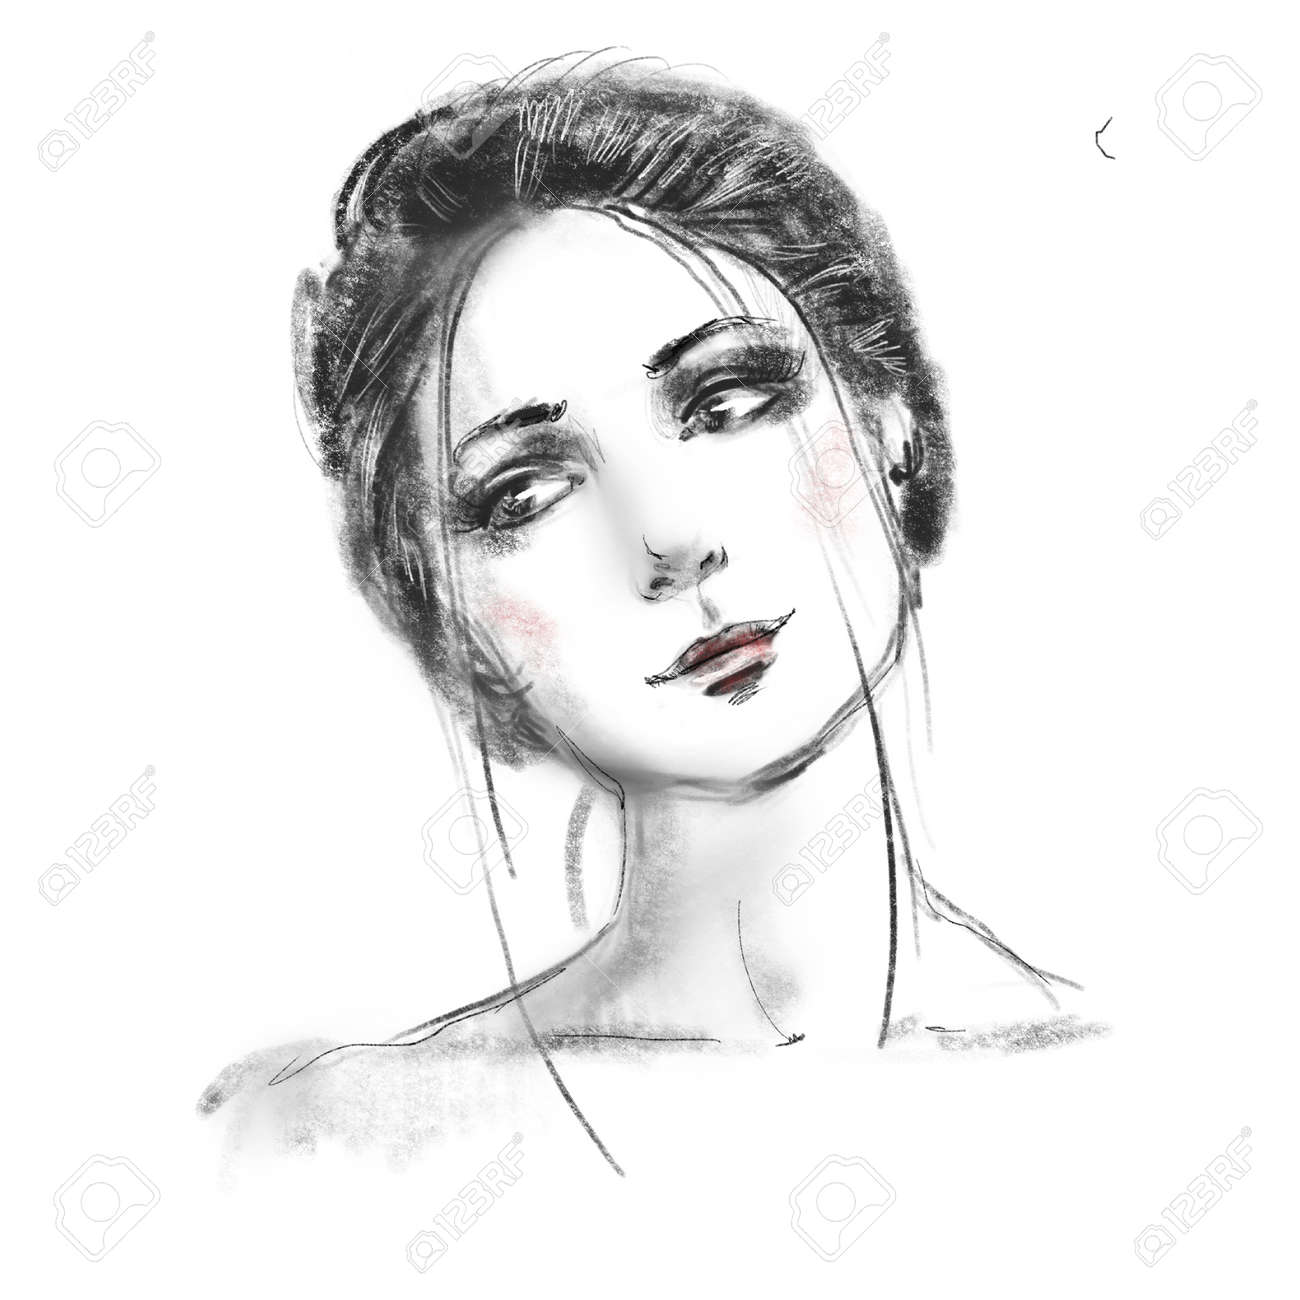 Beautiful girl face close up sketch. Hand drawn black and white pencil fashion illustration. Young woman portrait. - 164944863